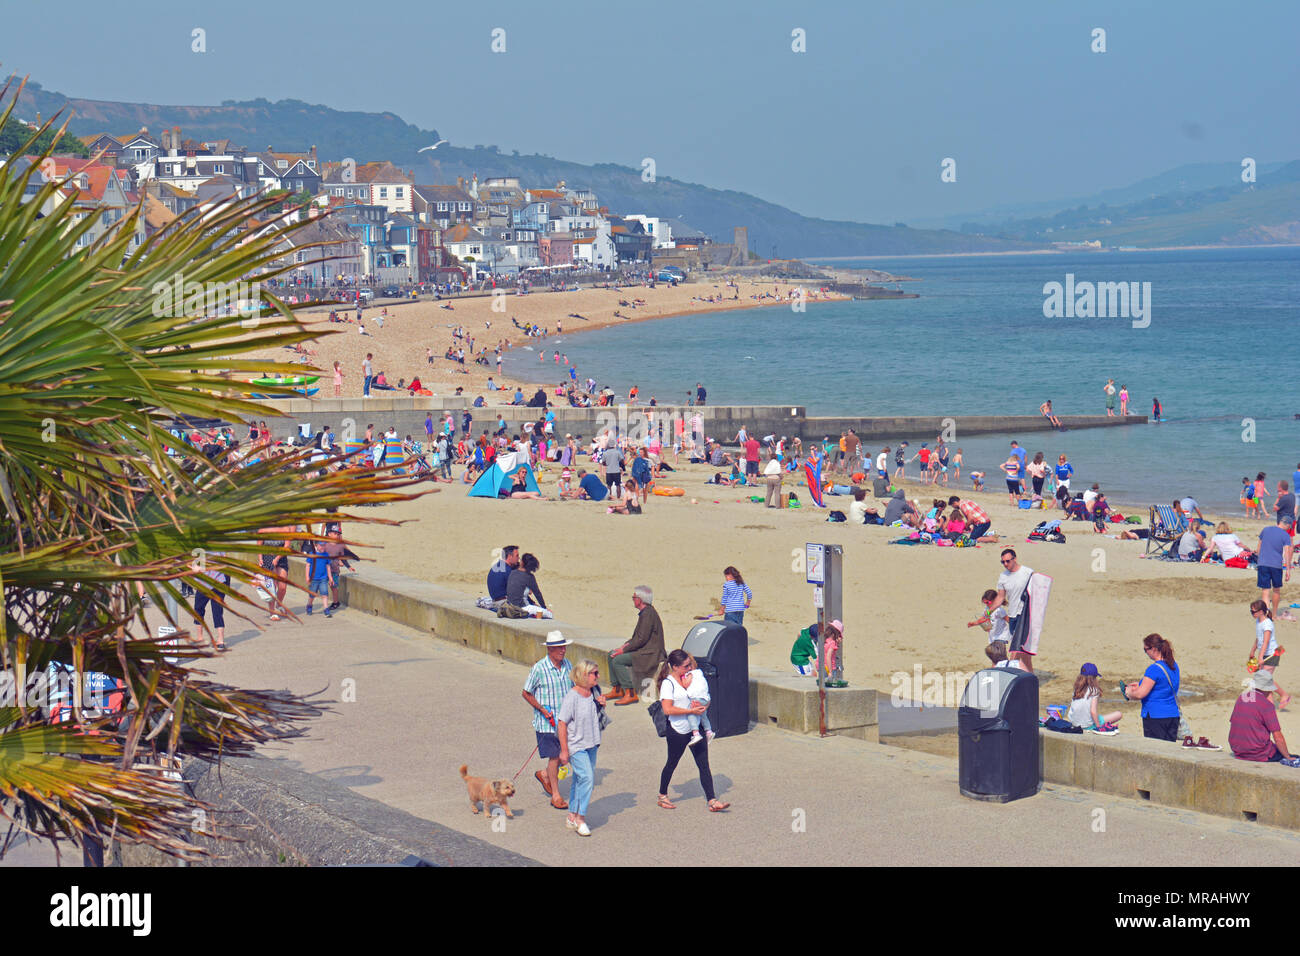 Lyme Regis, UK, 26 May 2018. UK Weather. Hundreds of people seen at Lyme Regis in Dorset on the beach and in the sea on a very hot and humid saturday may bank holiday weekend 2018. Robert Timoney/Alamy/Live/News - Stock Image